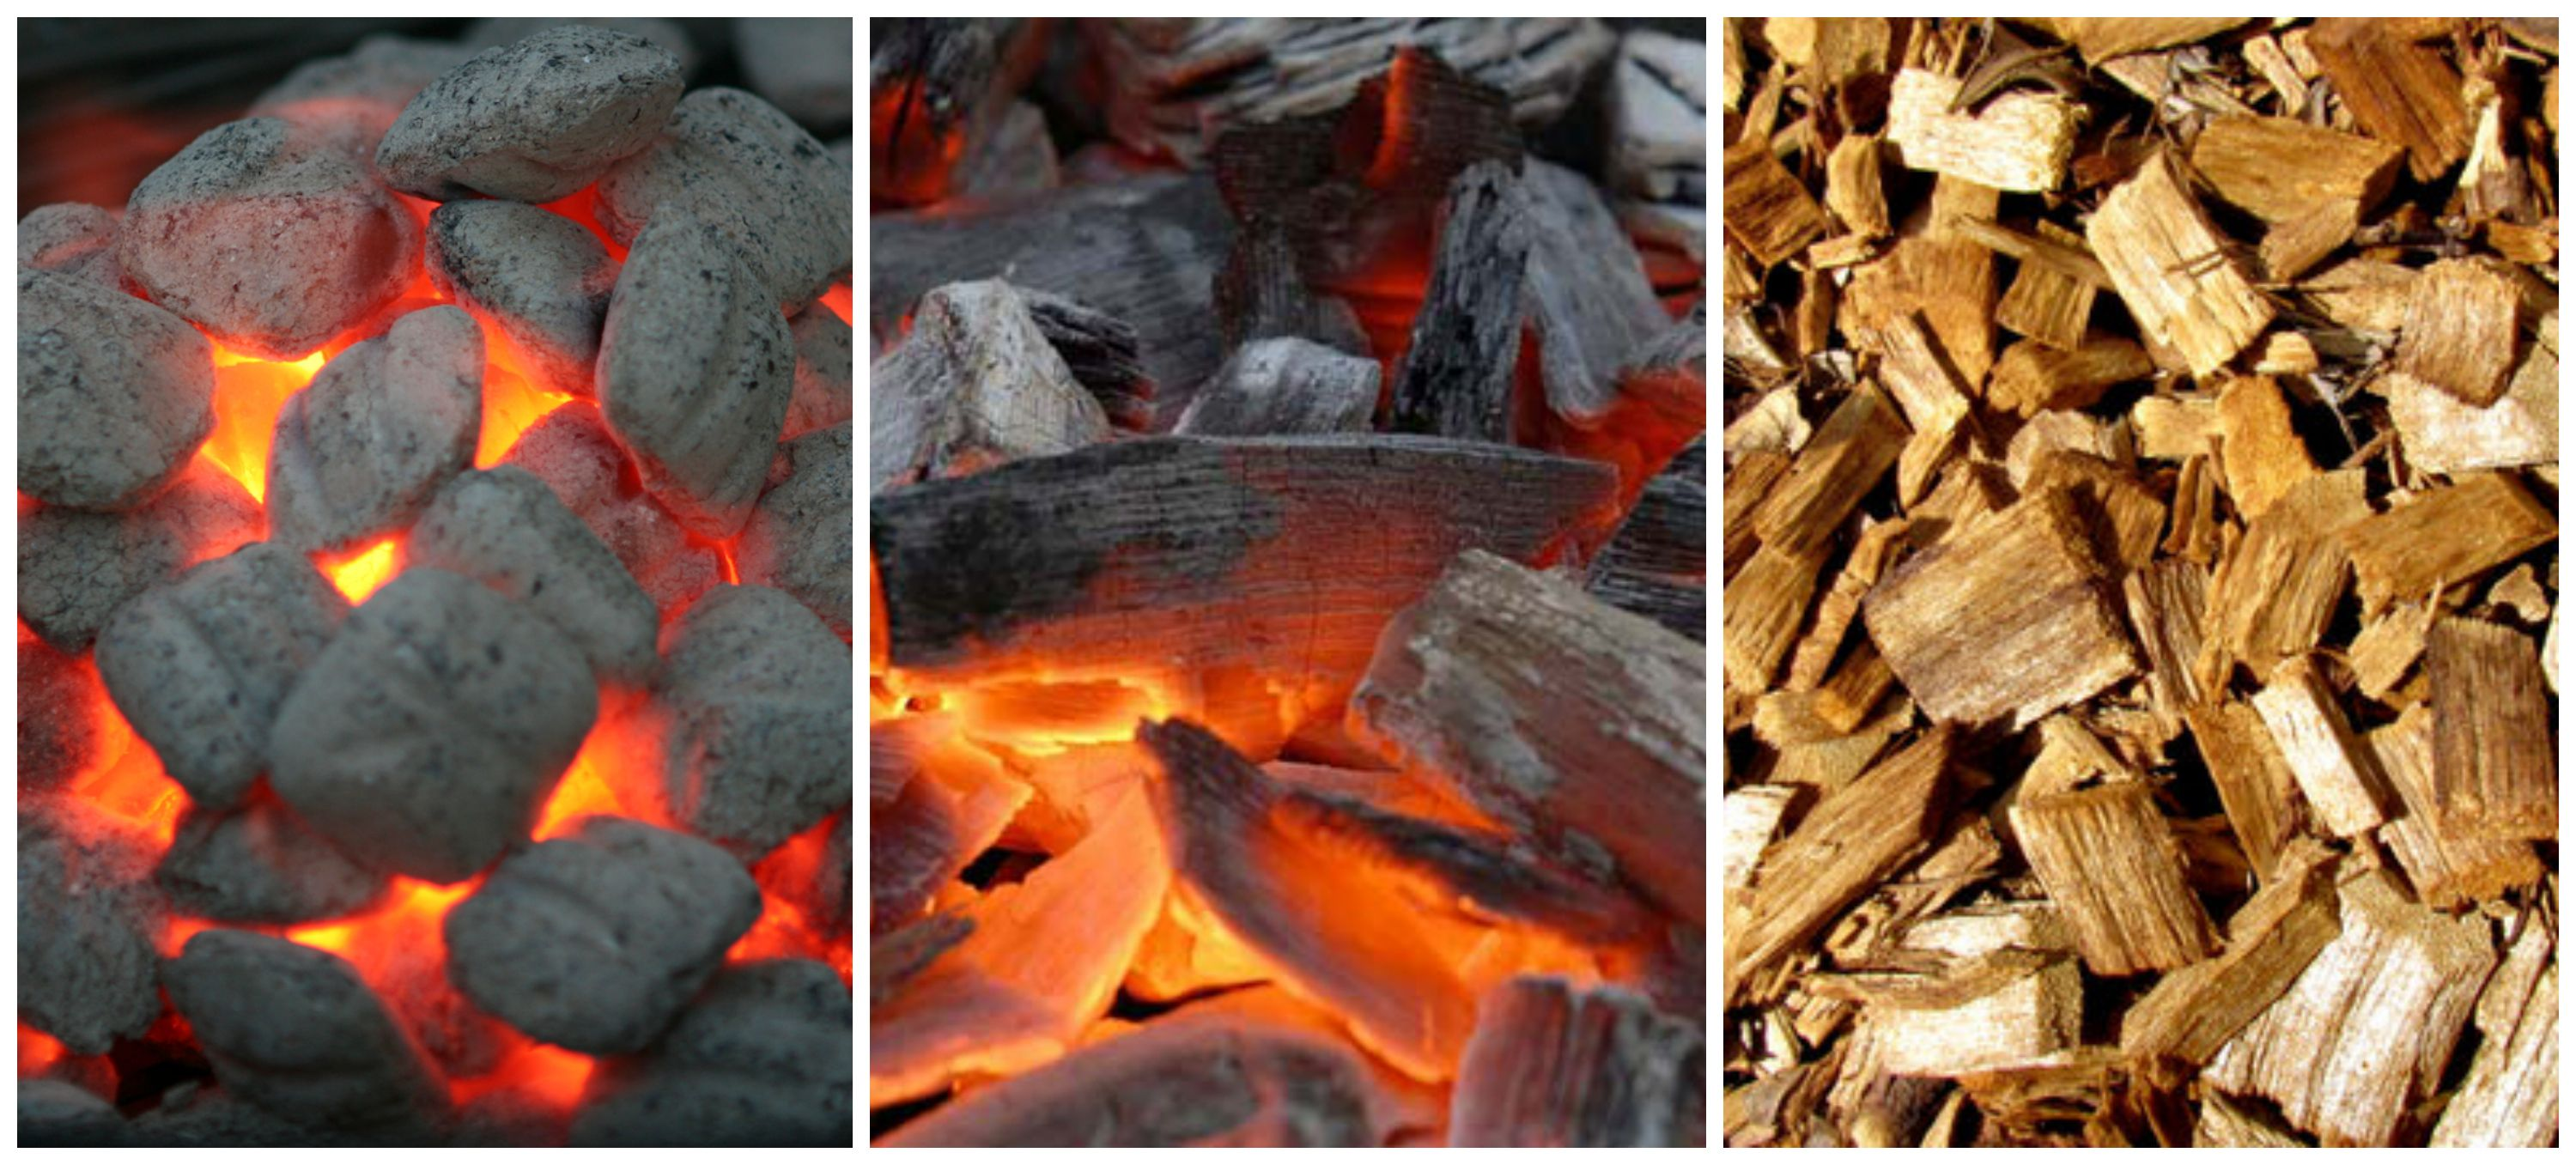 how to light hardwood lump charcoal without lighter fluid